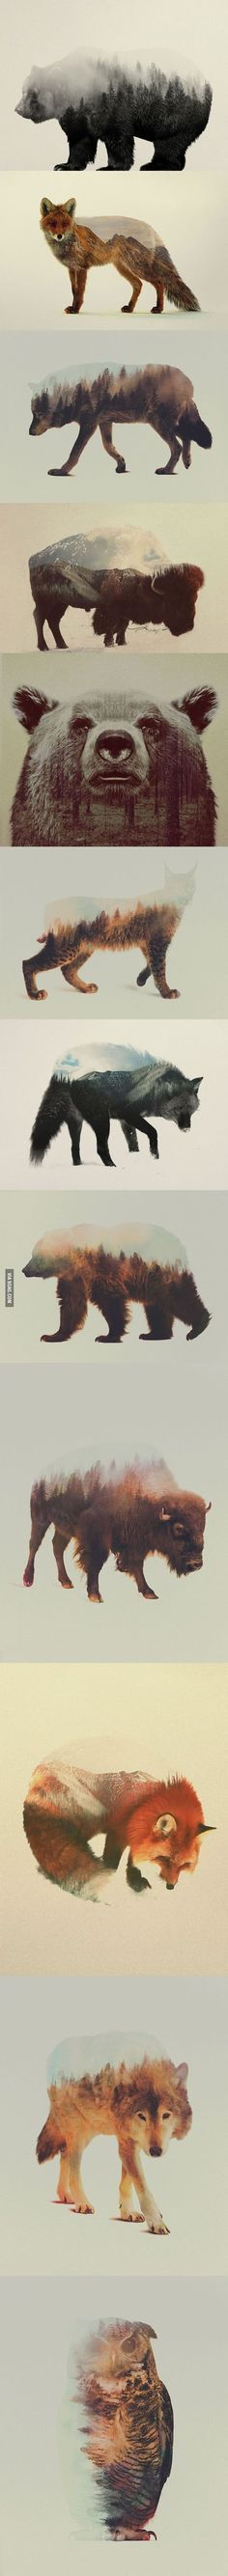 Double Exposure Portraits of Animals Reflecting Their Habitat by Andreas Lie.  I just love this Idea!